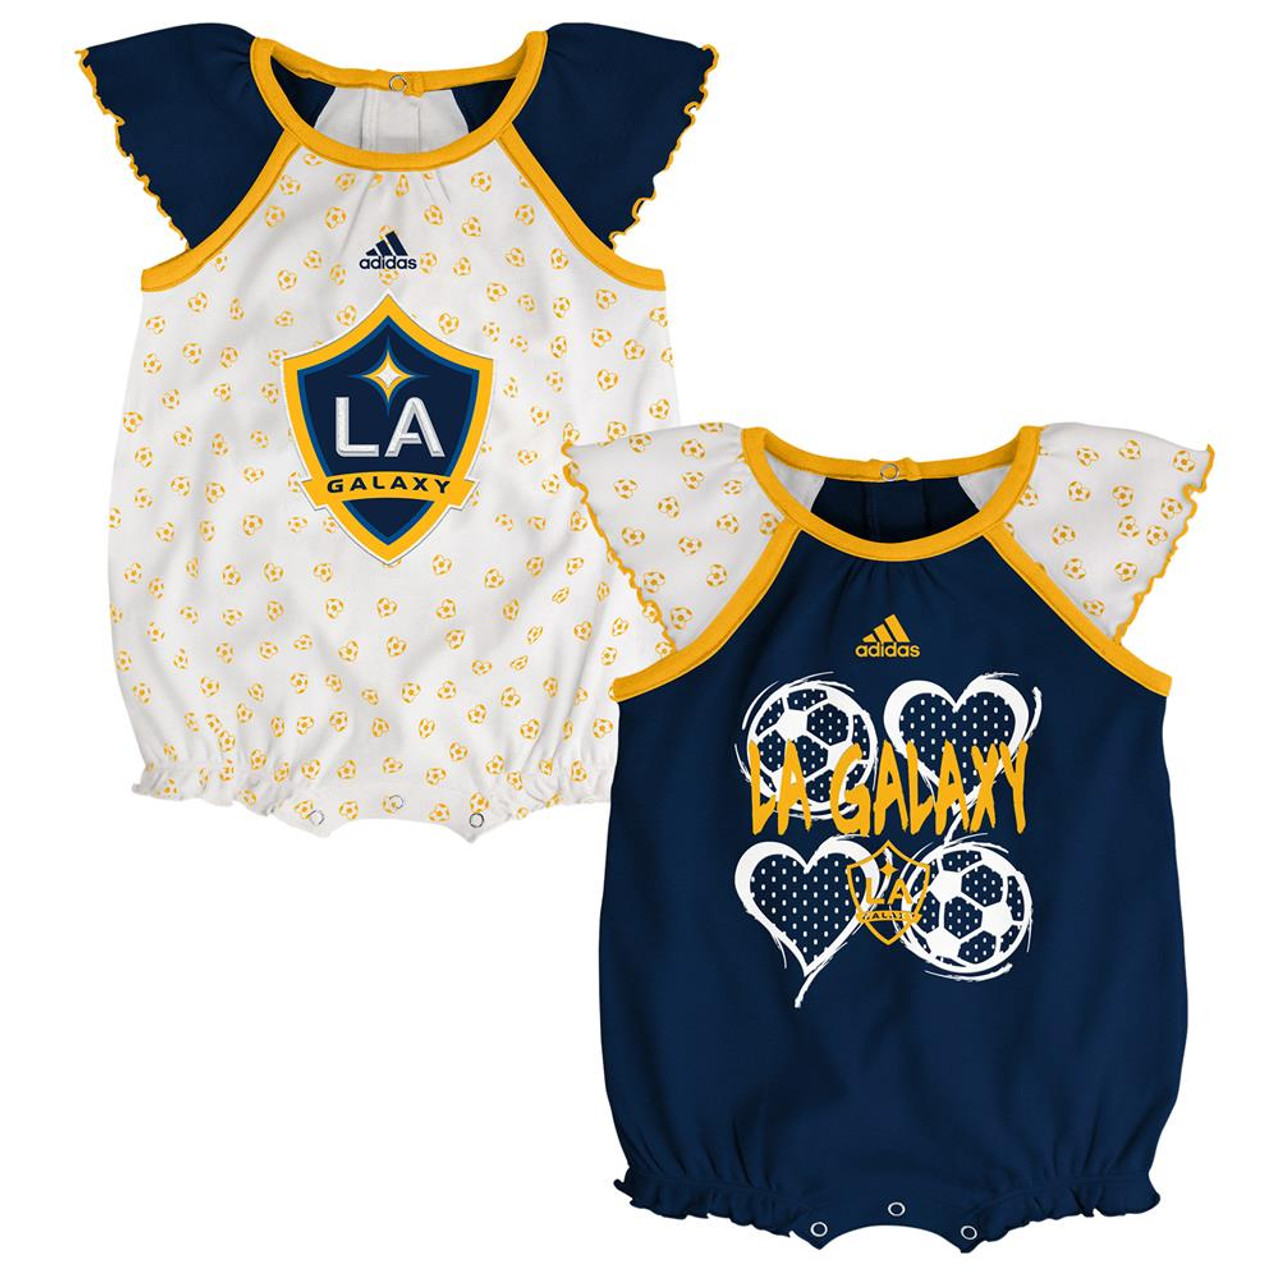 Los Angeles Galaxy Infant Bodysuit Adidas Baby Snapsuit Set